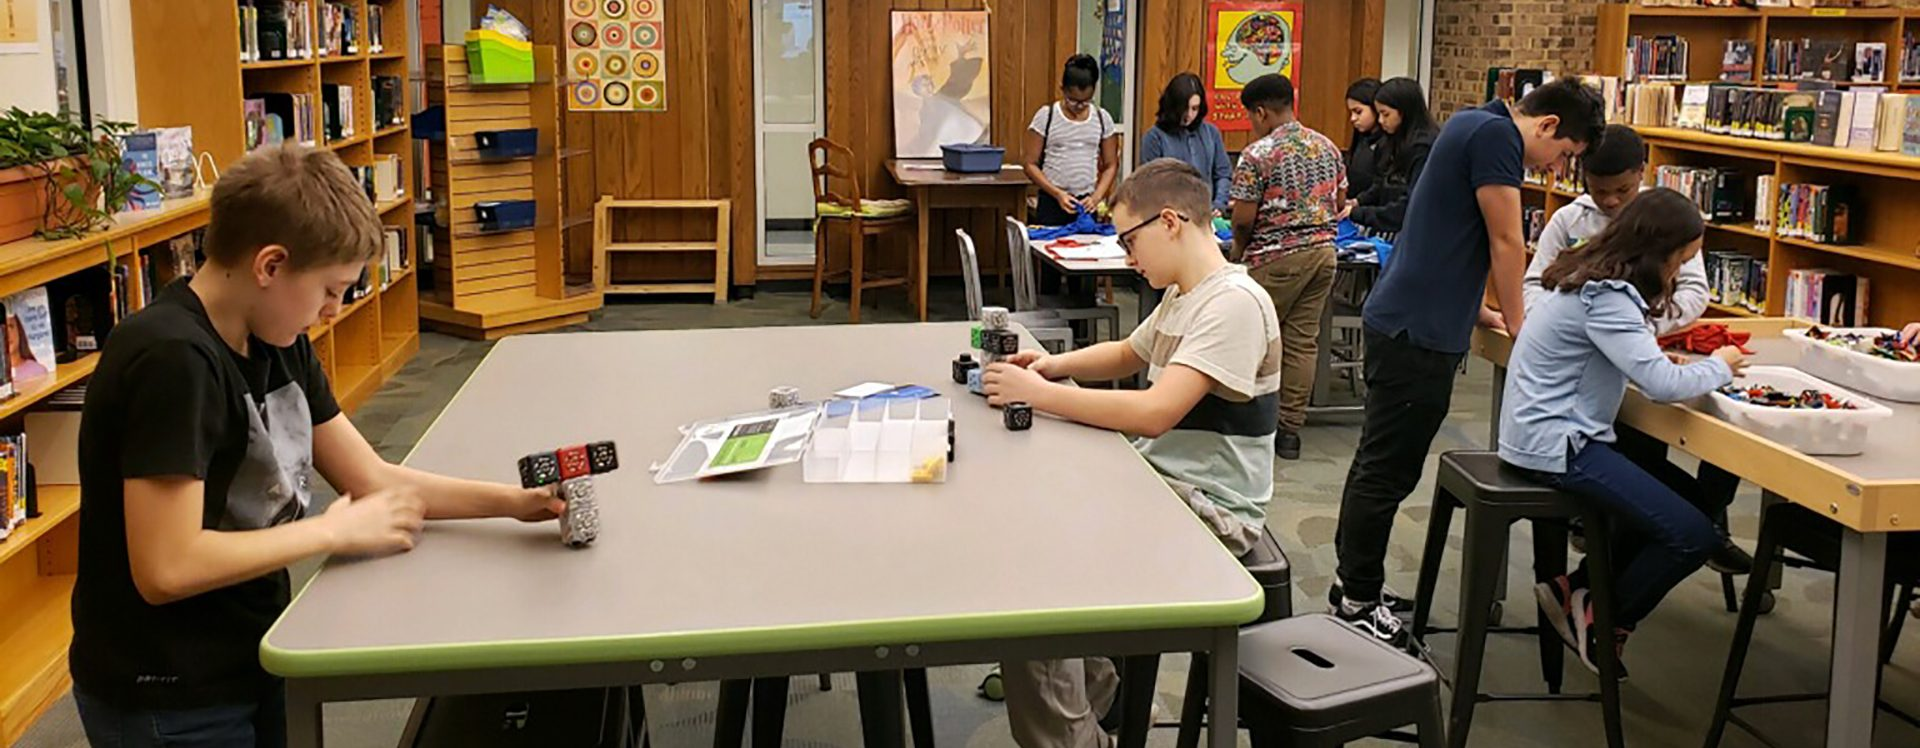 students working at their tables in a classroom.